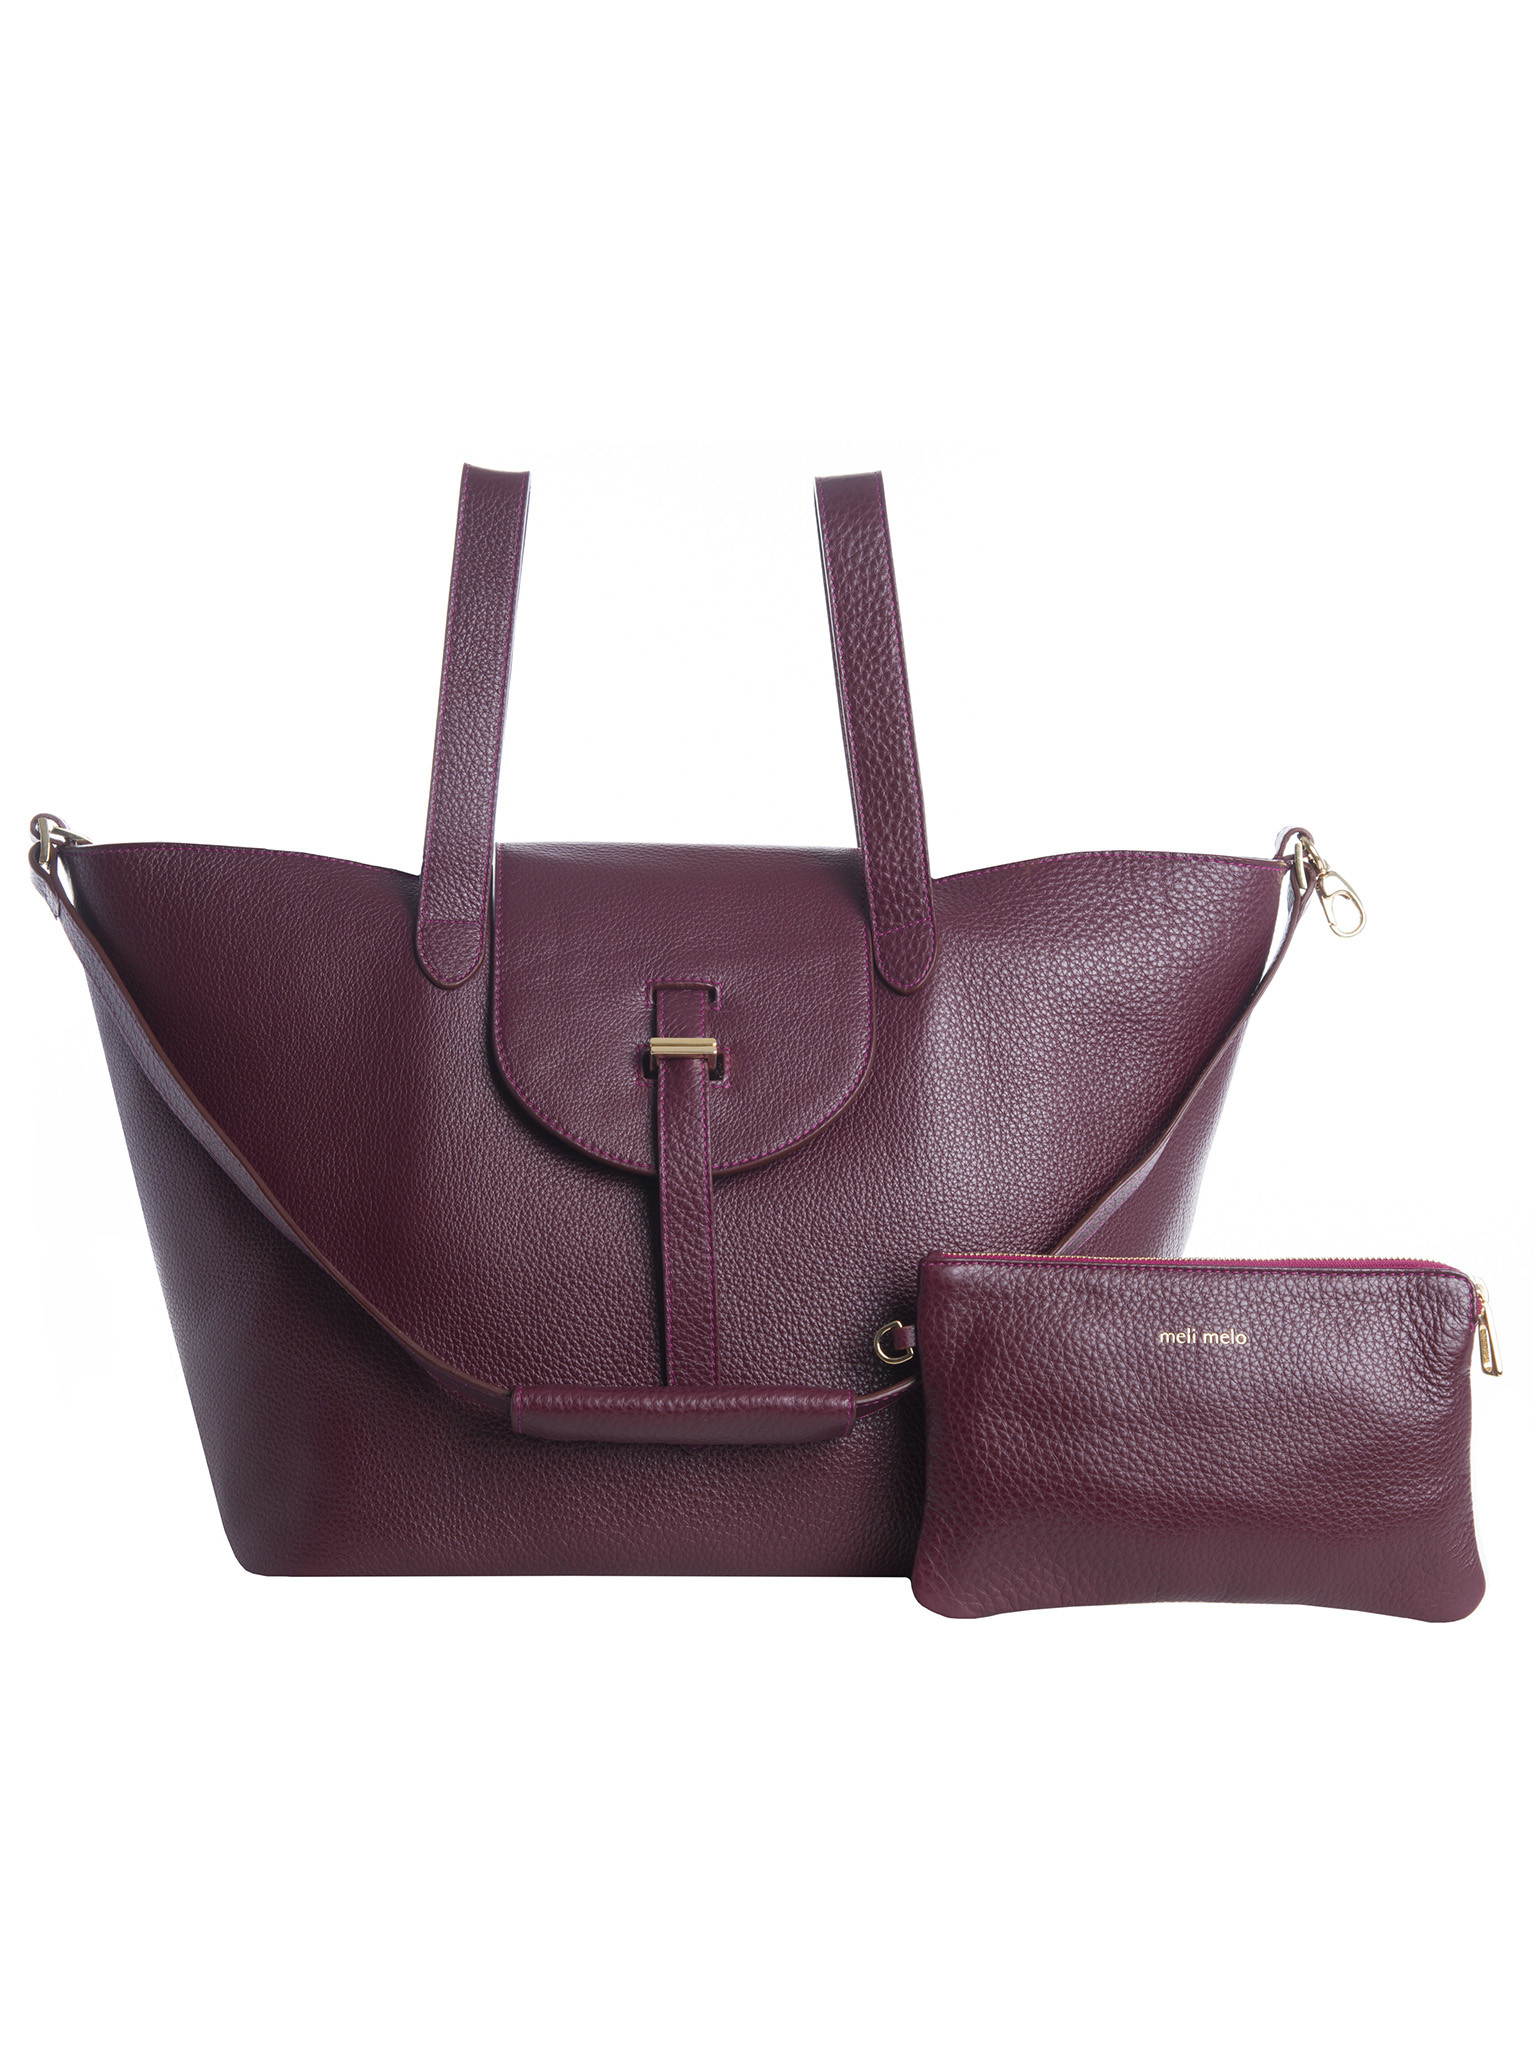 Lyst - meli melo Thela Burgundy in Purple 492acd9a42b1a